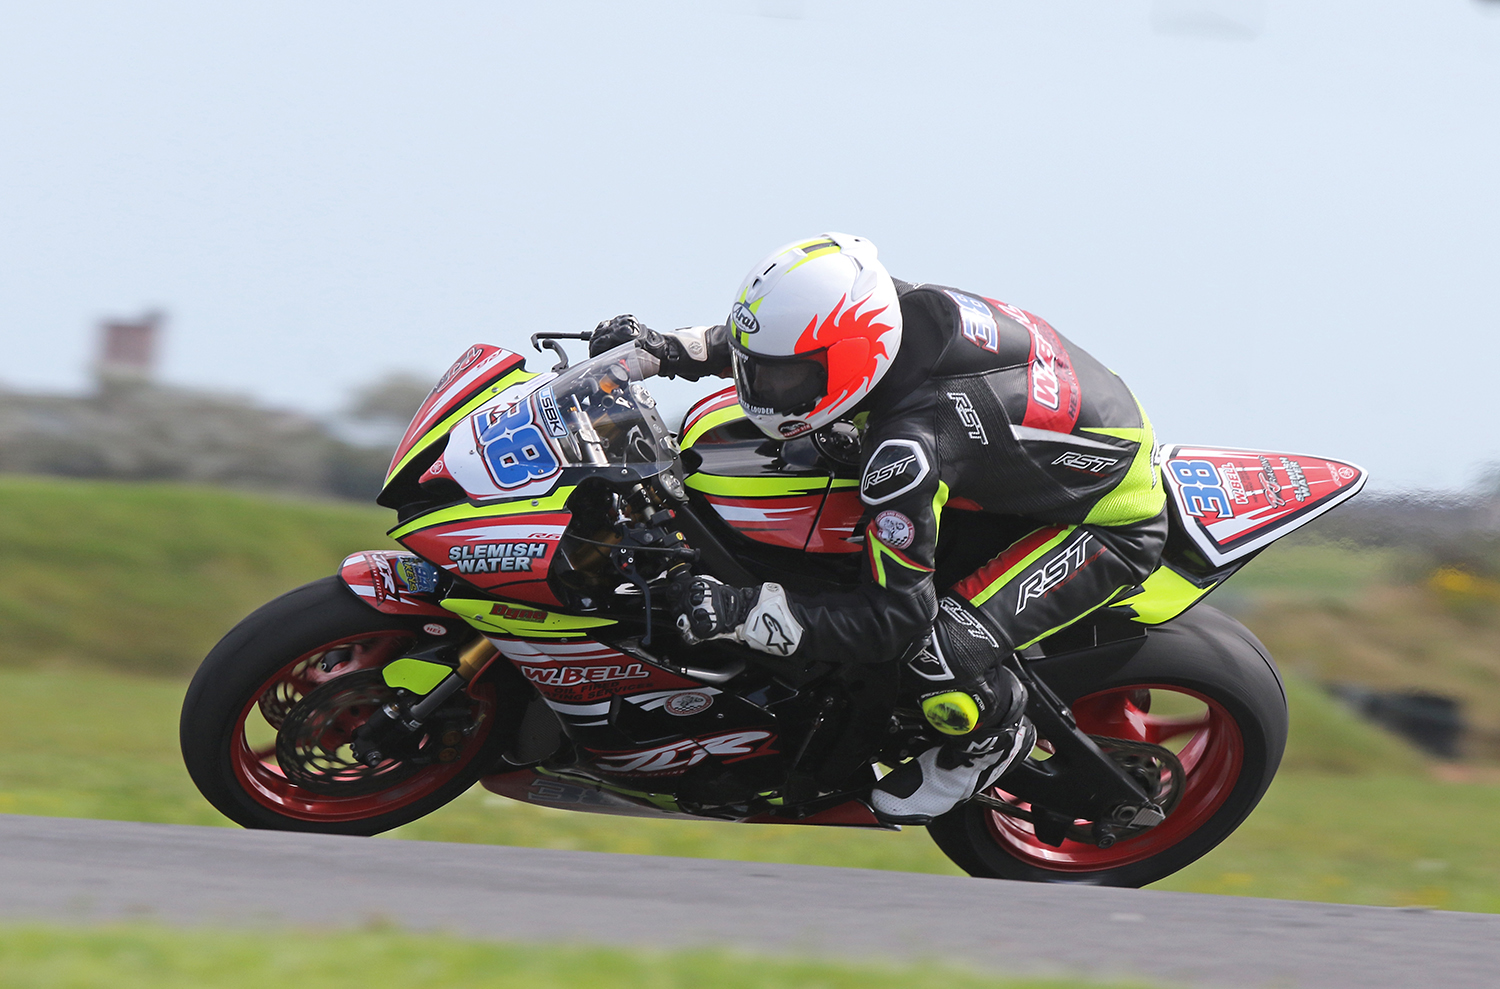 Lynn was the Supersport man to beat...